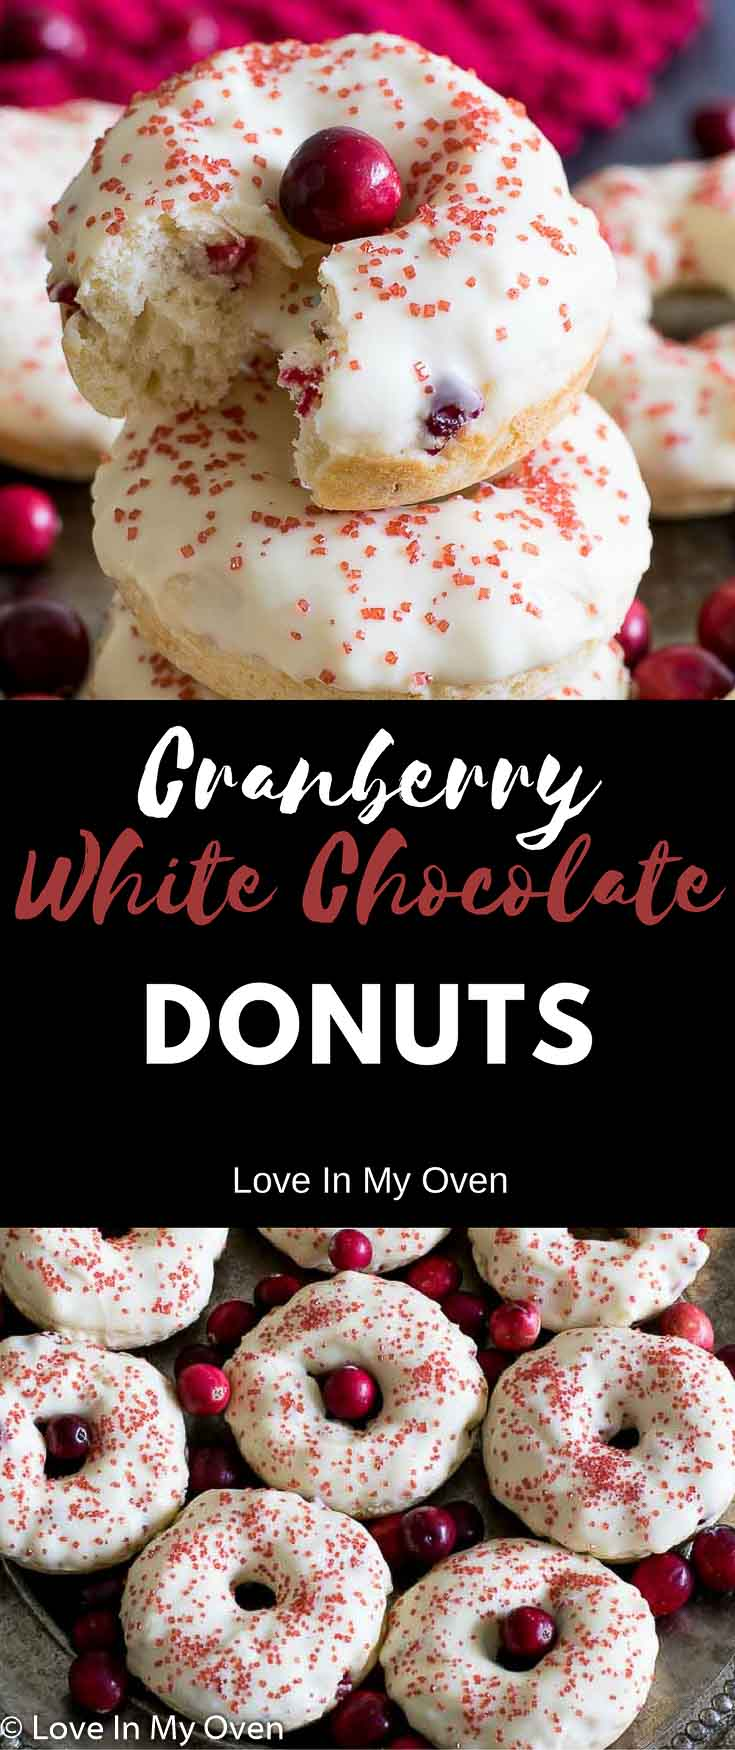 cranberry, white chocolate, baked donuts, baked, donuts, cake, Christmas, Christmas baking, breakfast